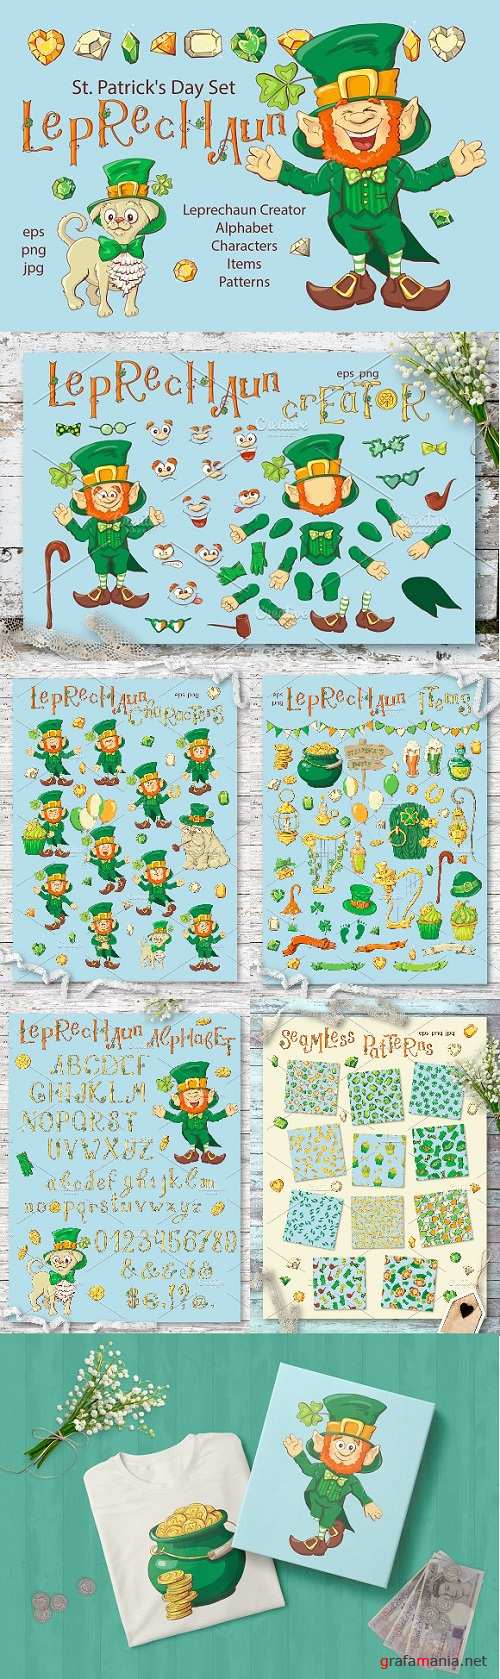 Leprechaun – St. Patrick's Day Set 2231895